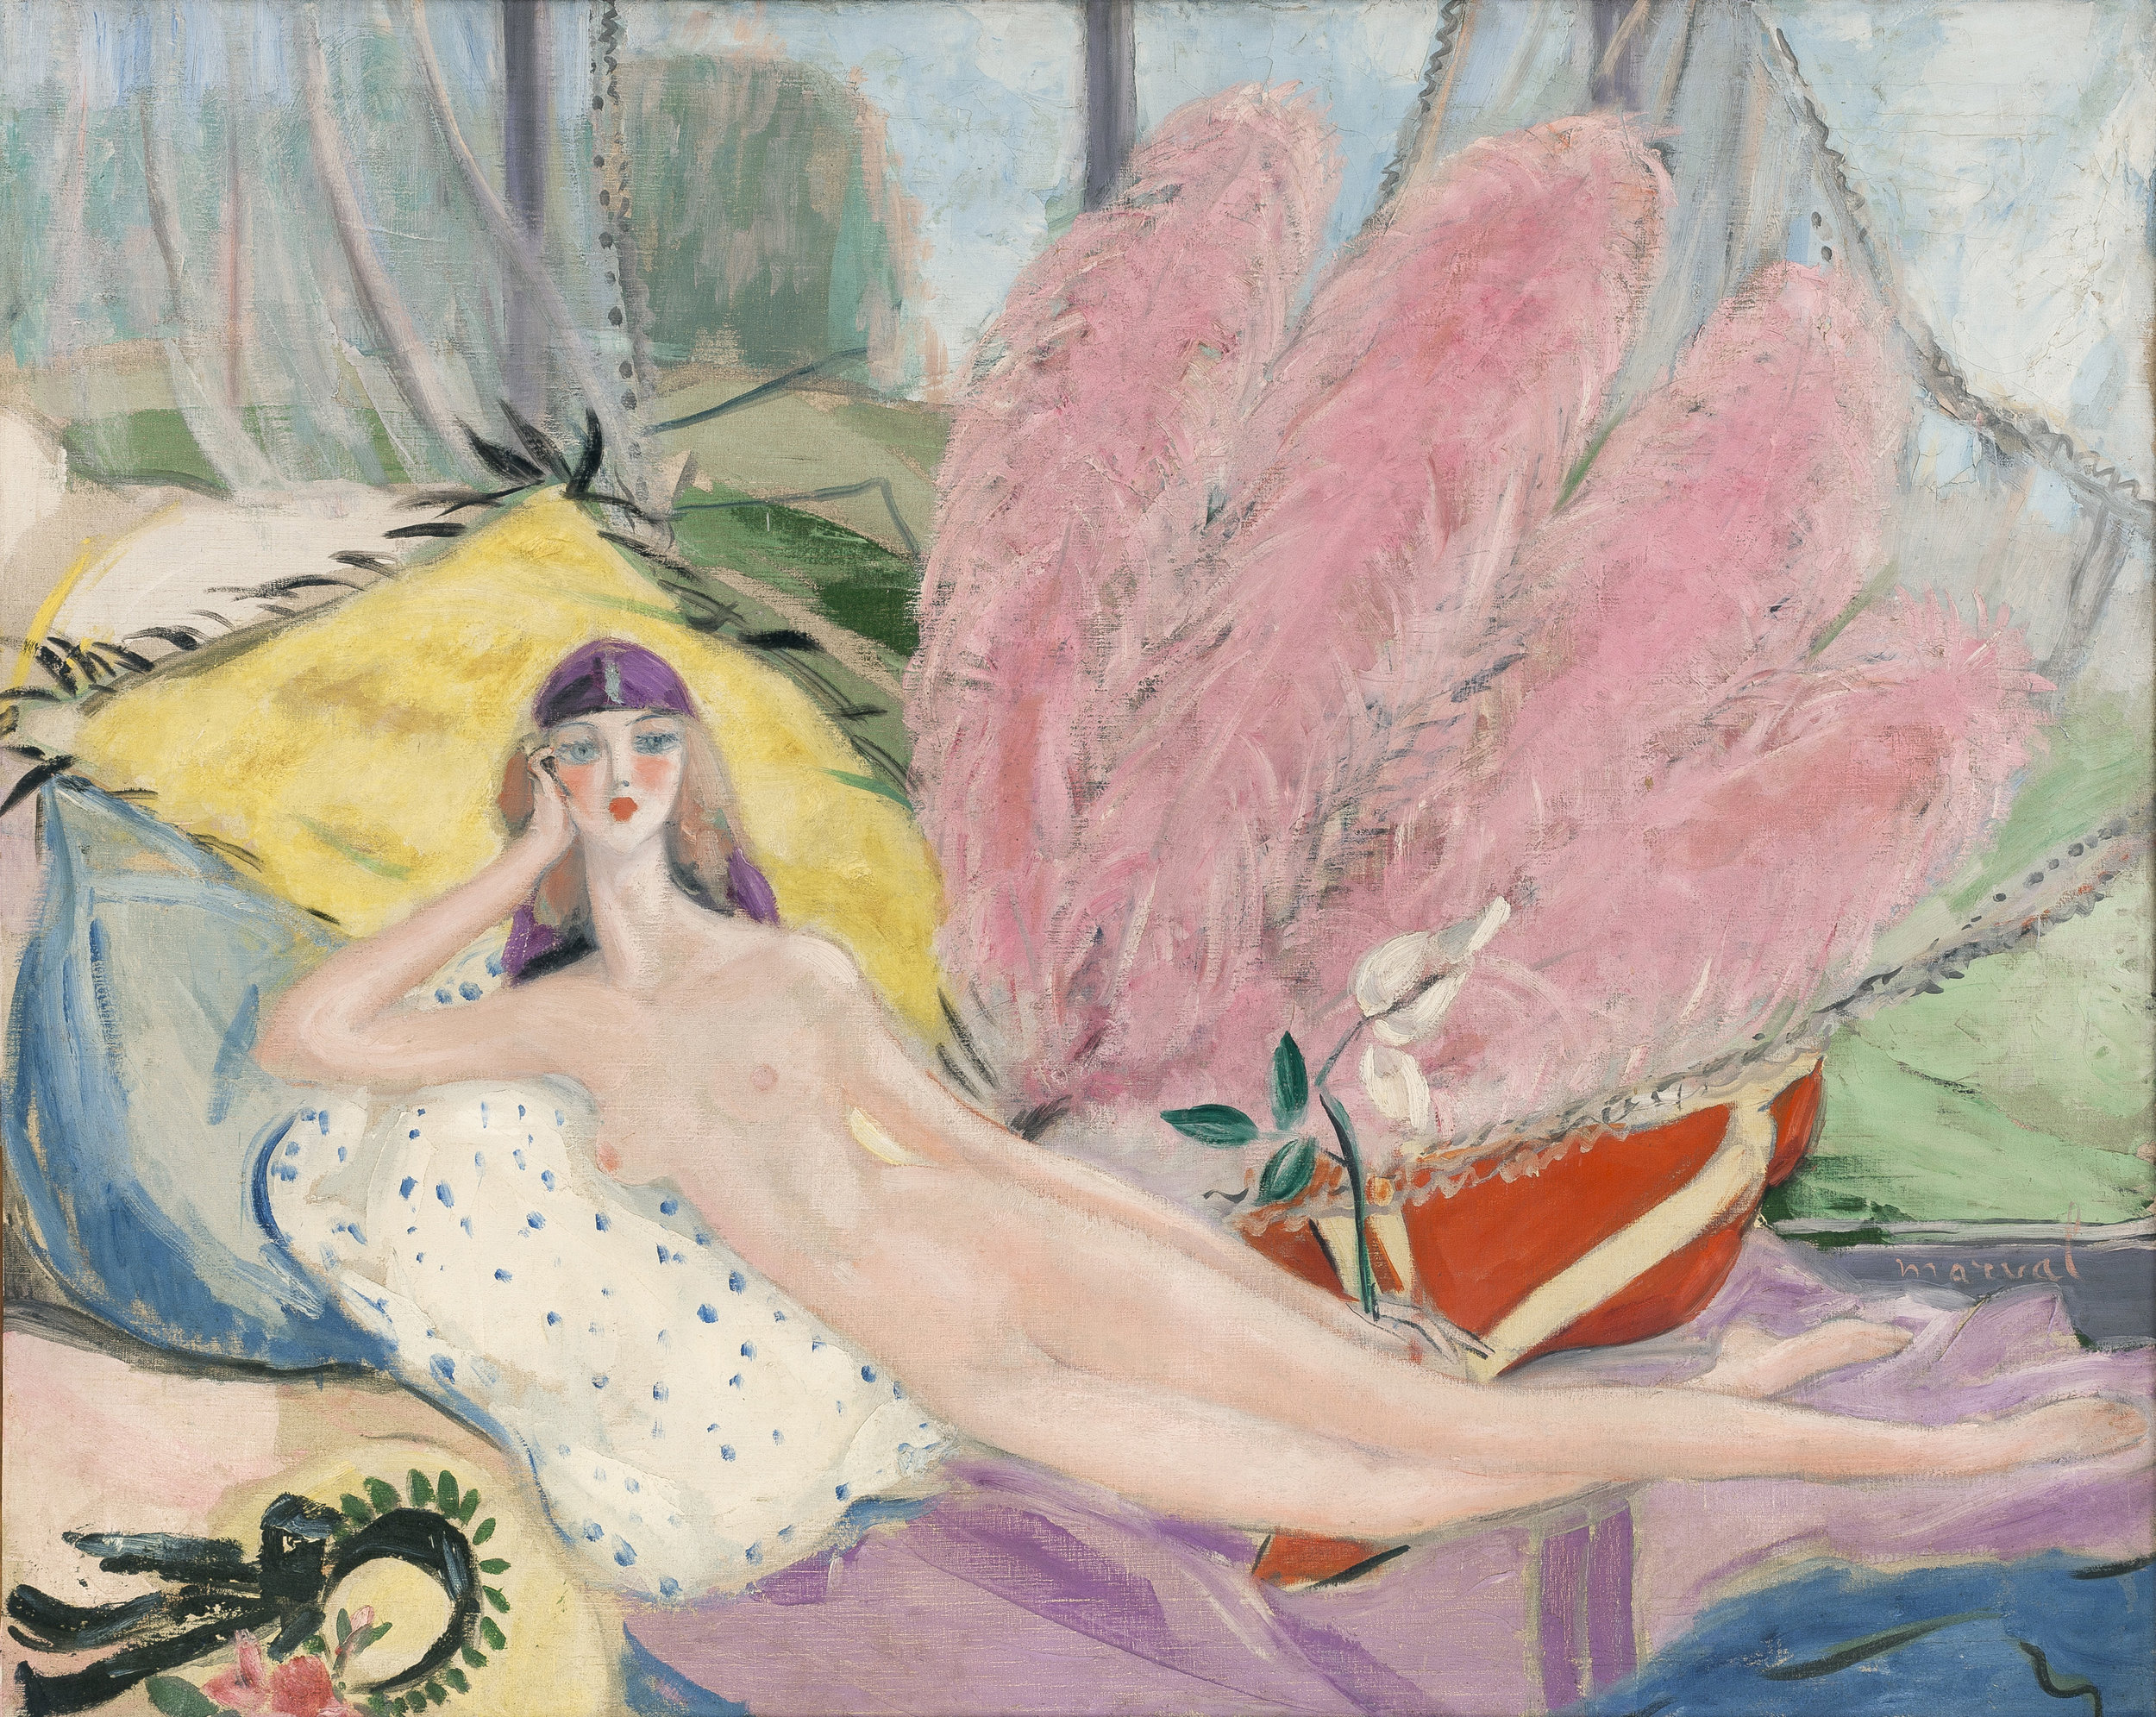 L'Étrange Femme, Jacqueline Marval, 1920. Oil on canvas, 130 x 162 cm. Private collection, Paris.